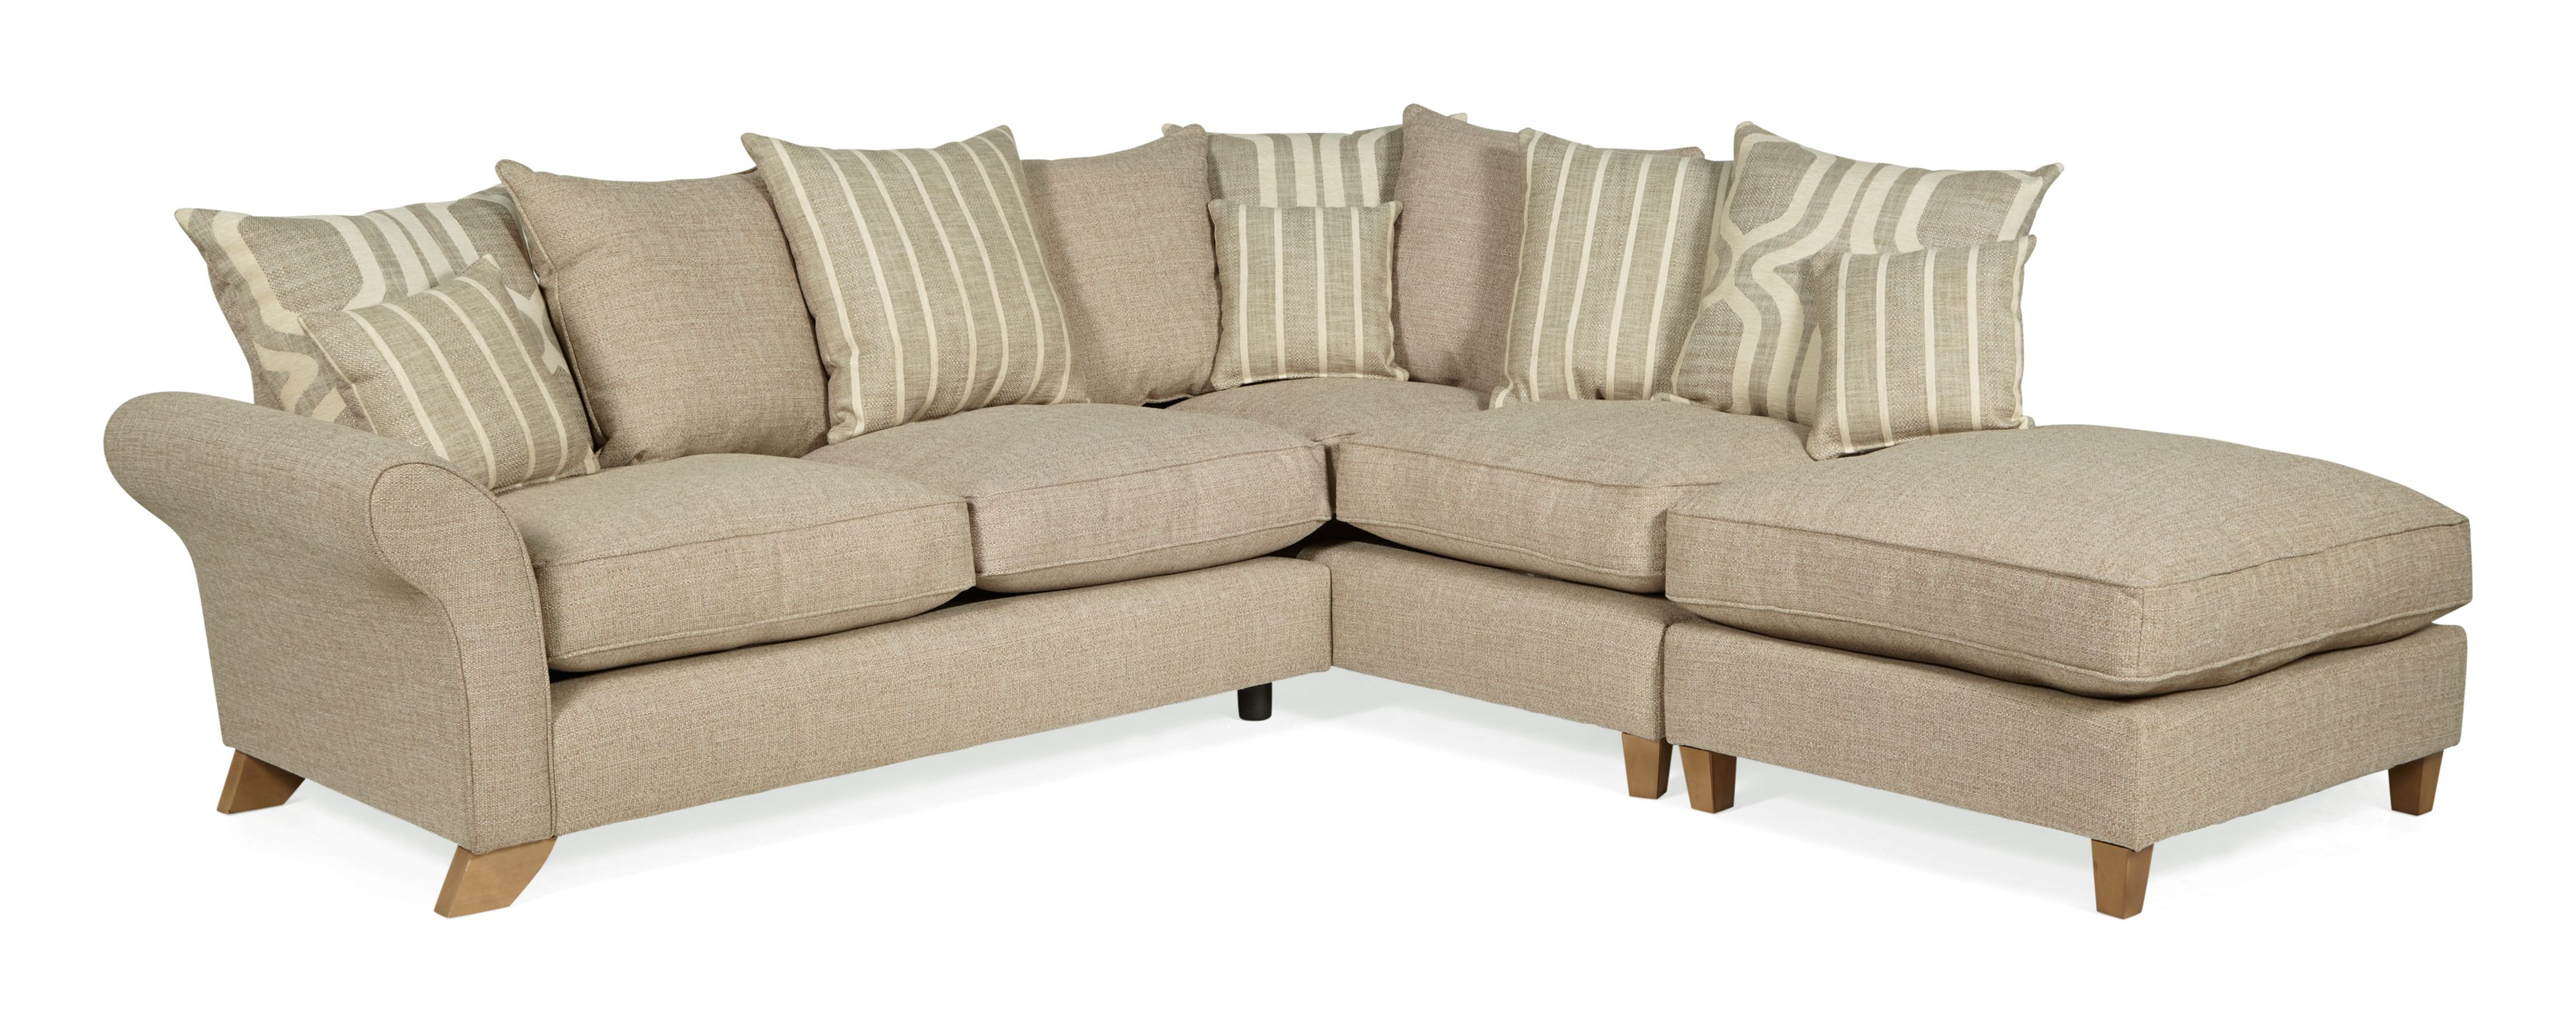 House Of Fraser Linea Sofa Grey House Of Fraser Clearance Sofas | Www.resnooze.com